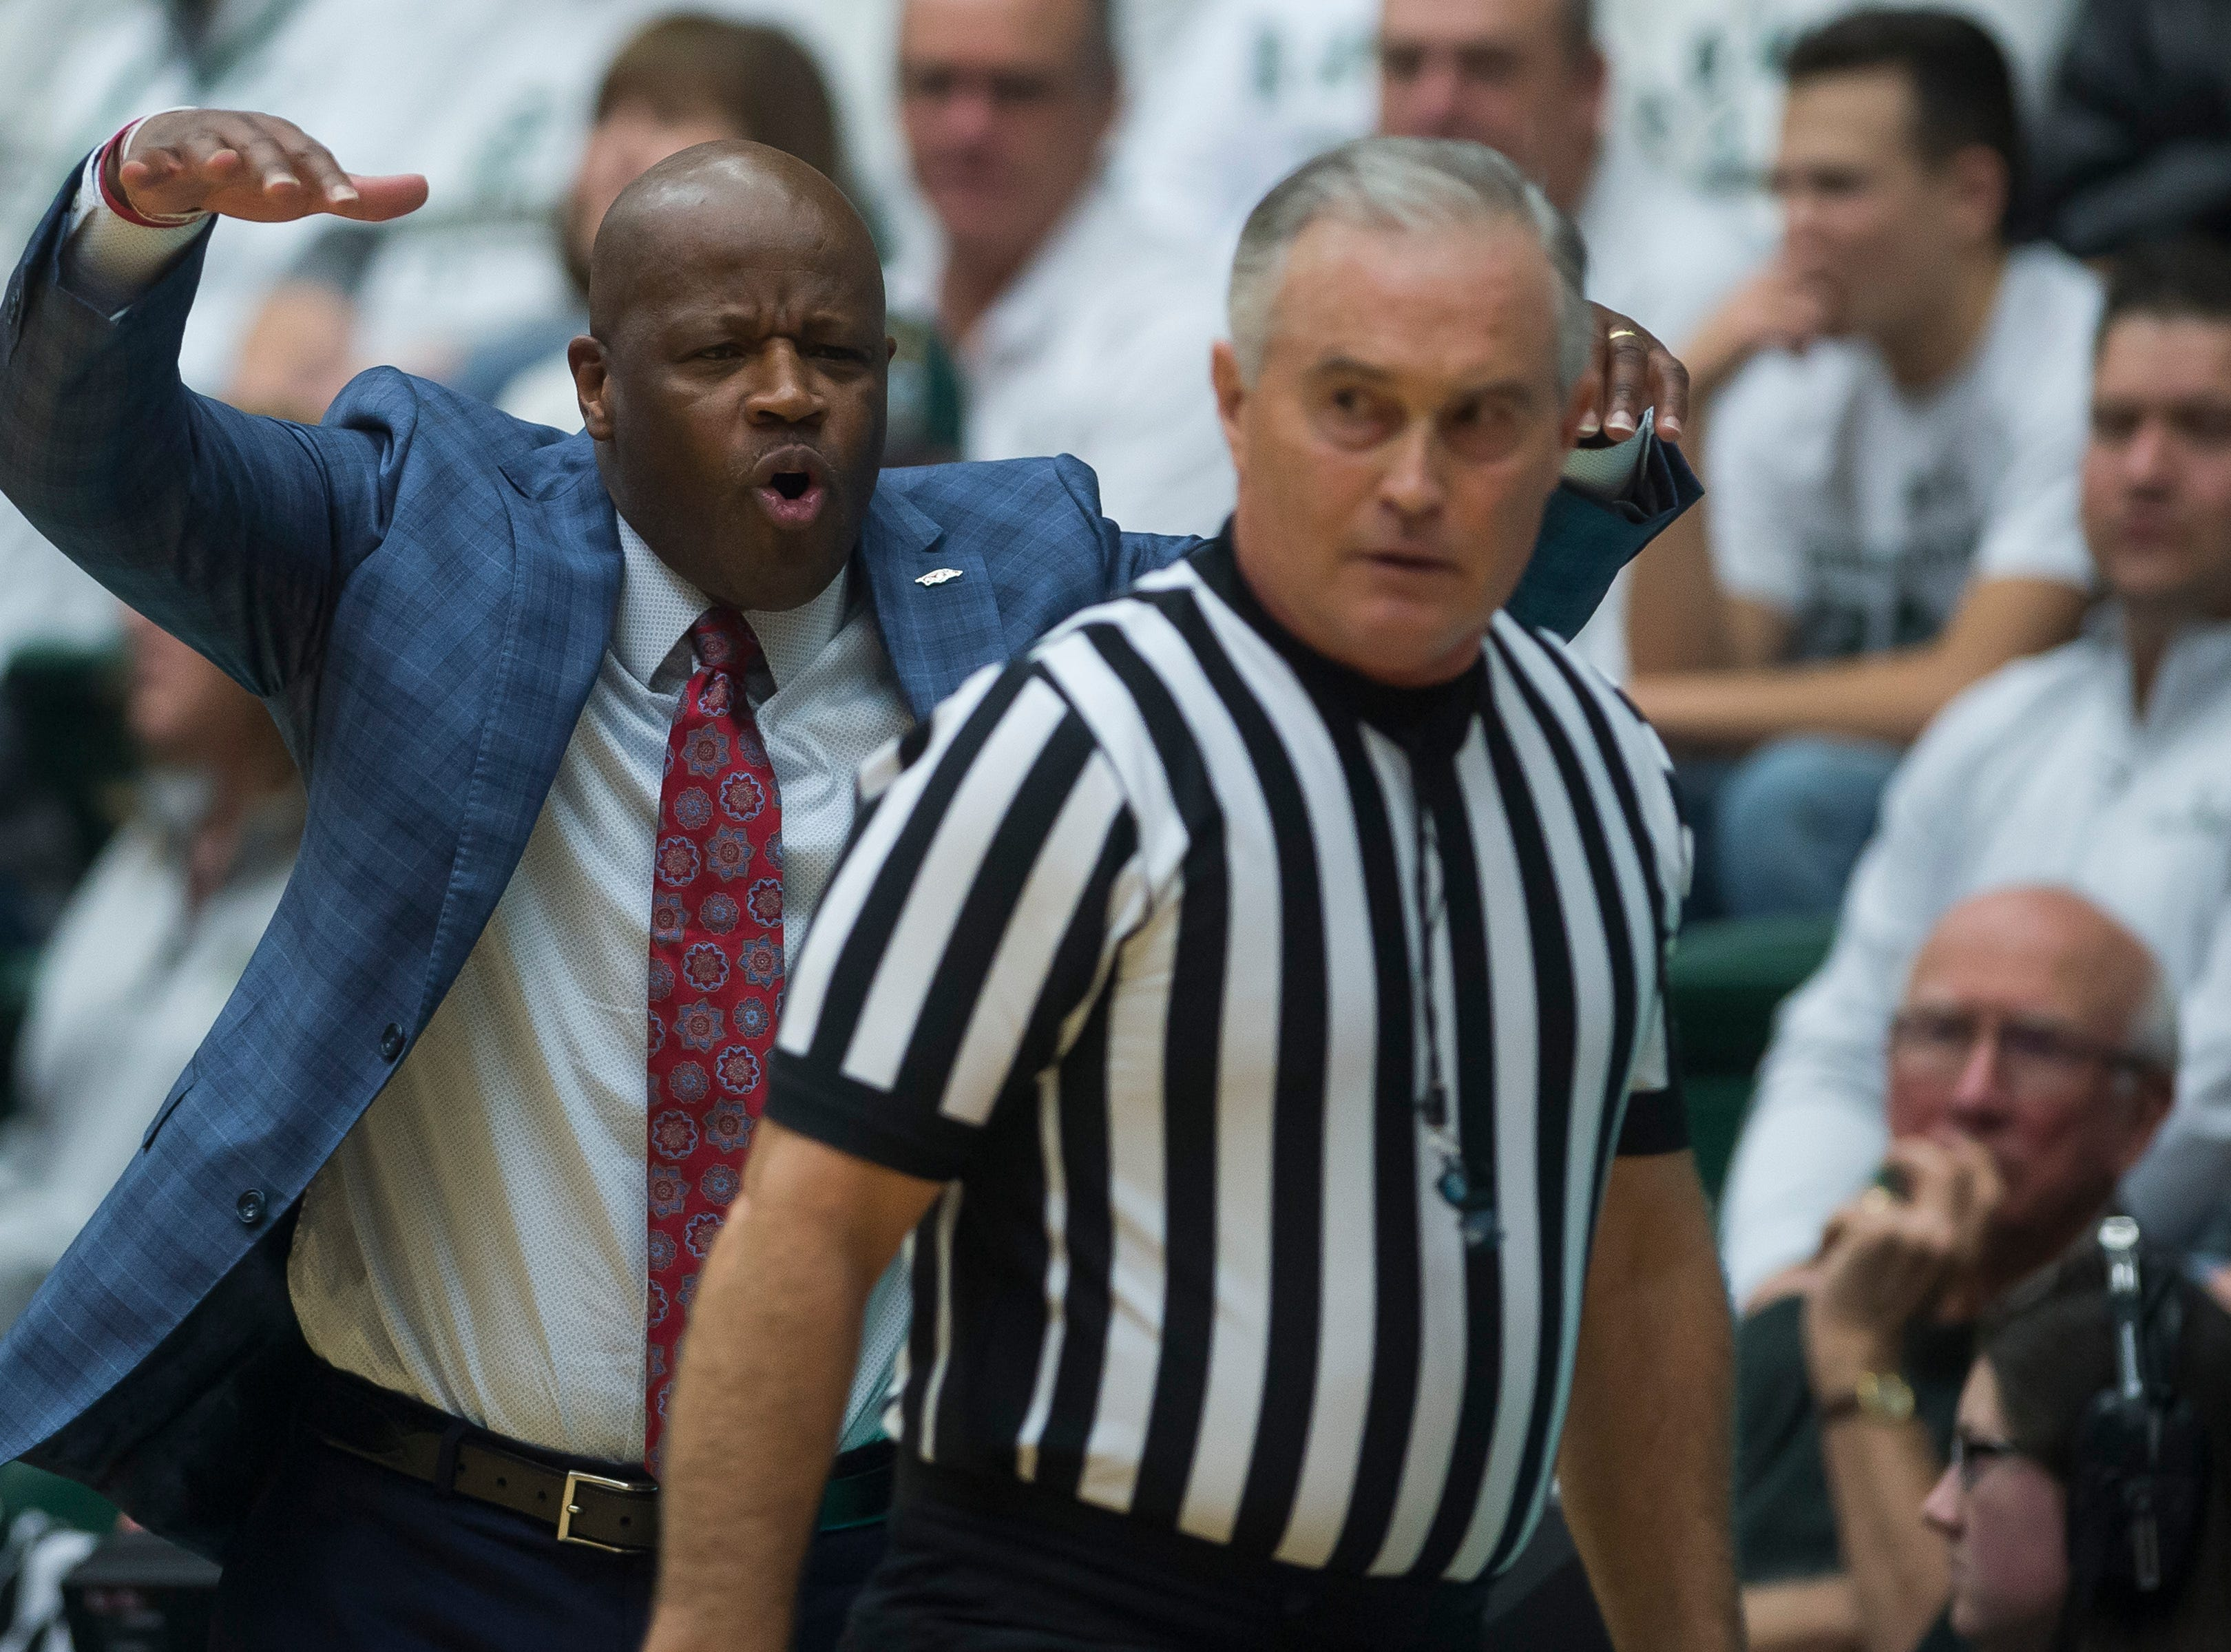 Arkansas head coach Mike Anderson talks to an official during a game against Colorado State University on Wednesday, Dec. 5, 2018, Moby Arena in Fort Collins, Colo.